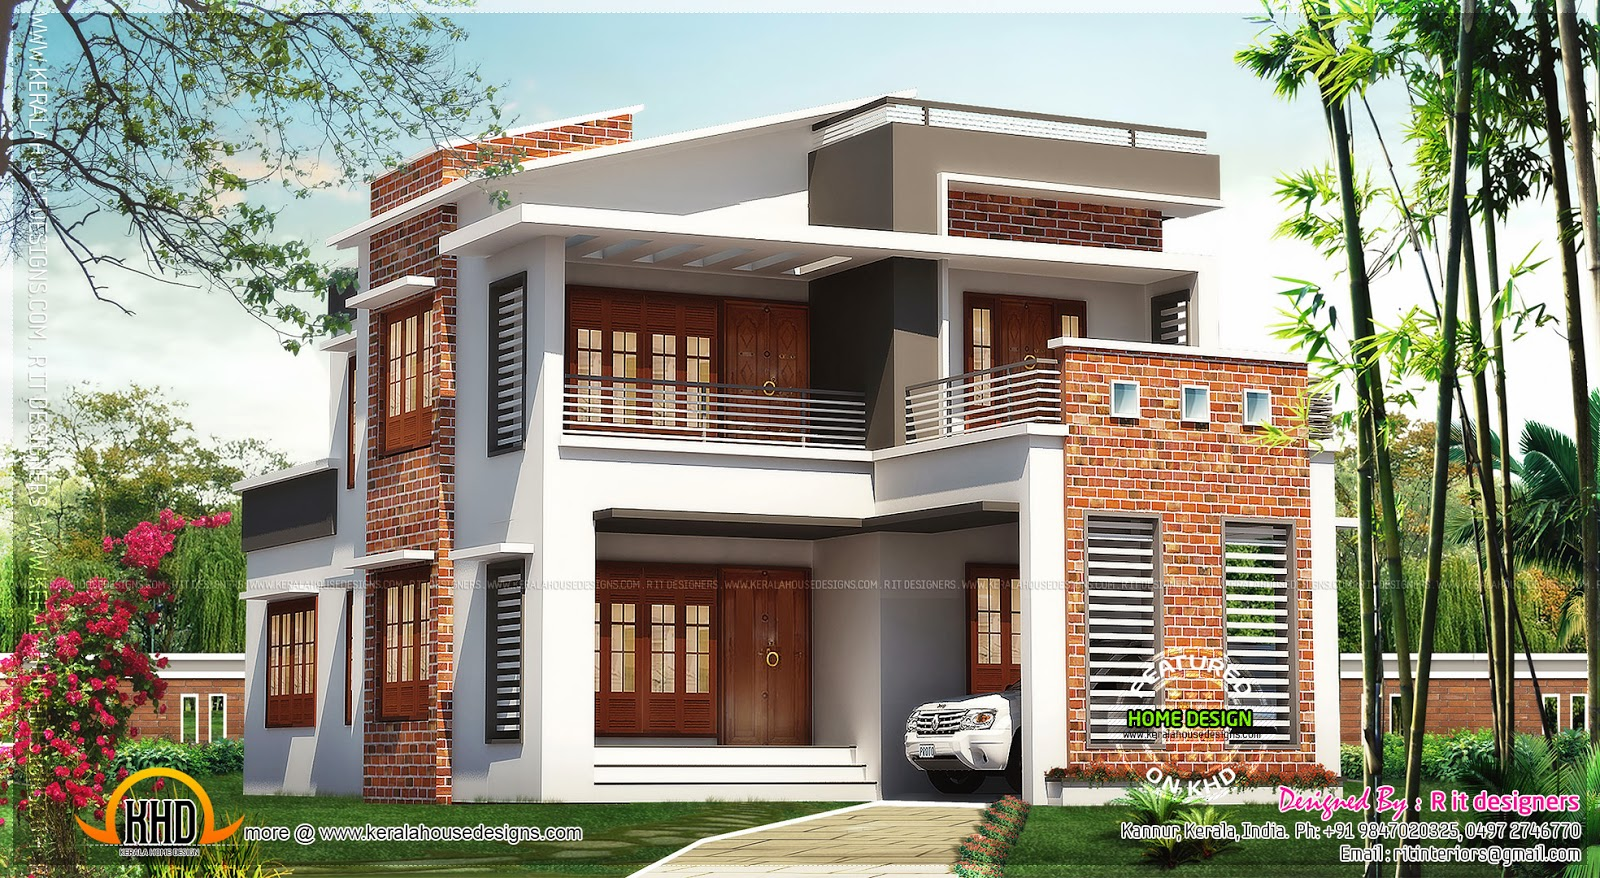 Brick mix house exterior design indian house plans for Home exterior design india